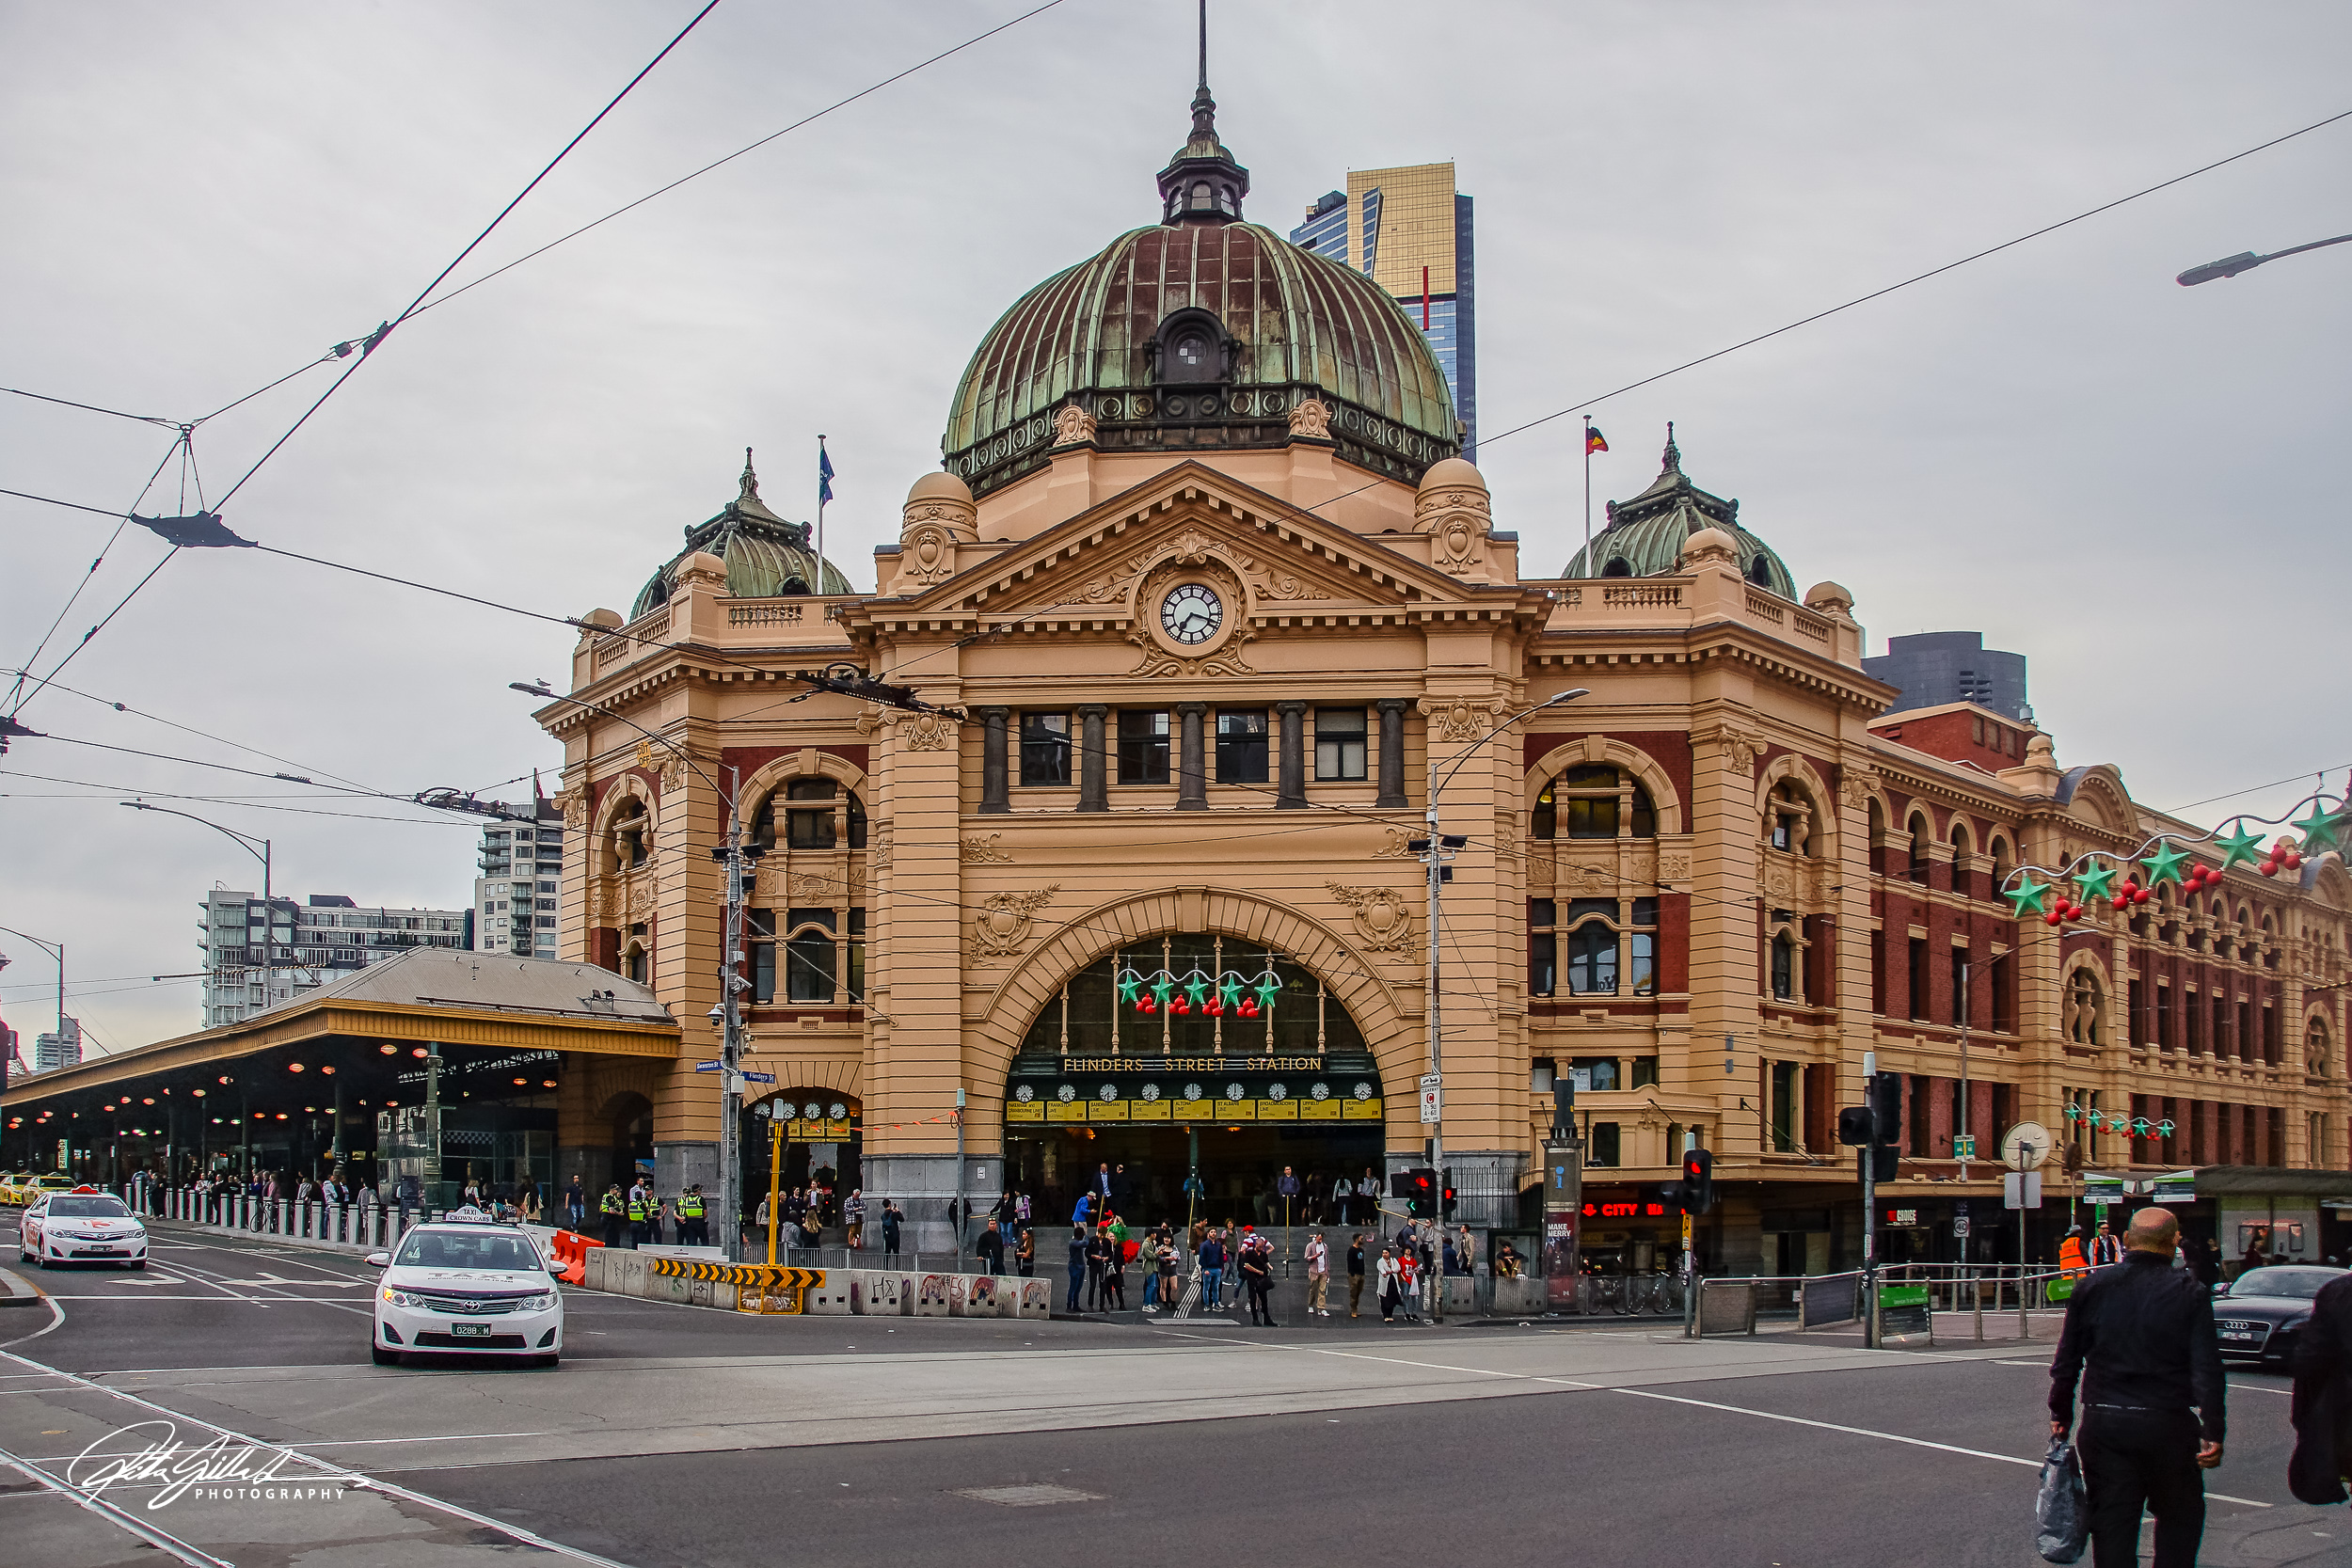 Melbourne – Flinders St Station